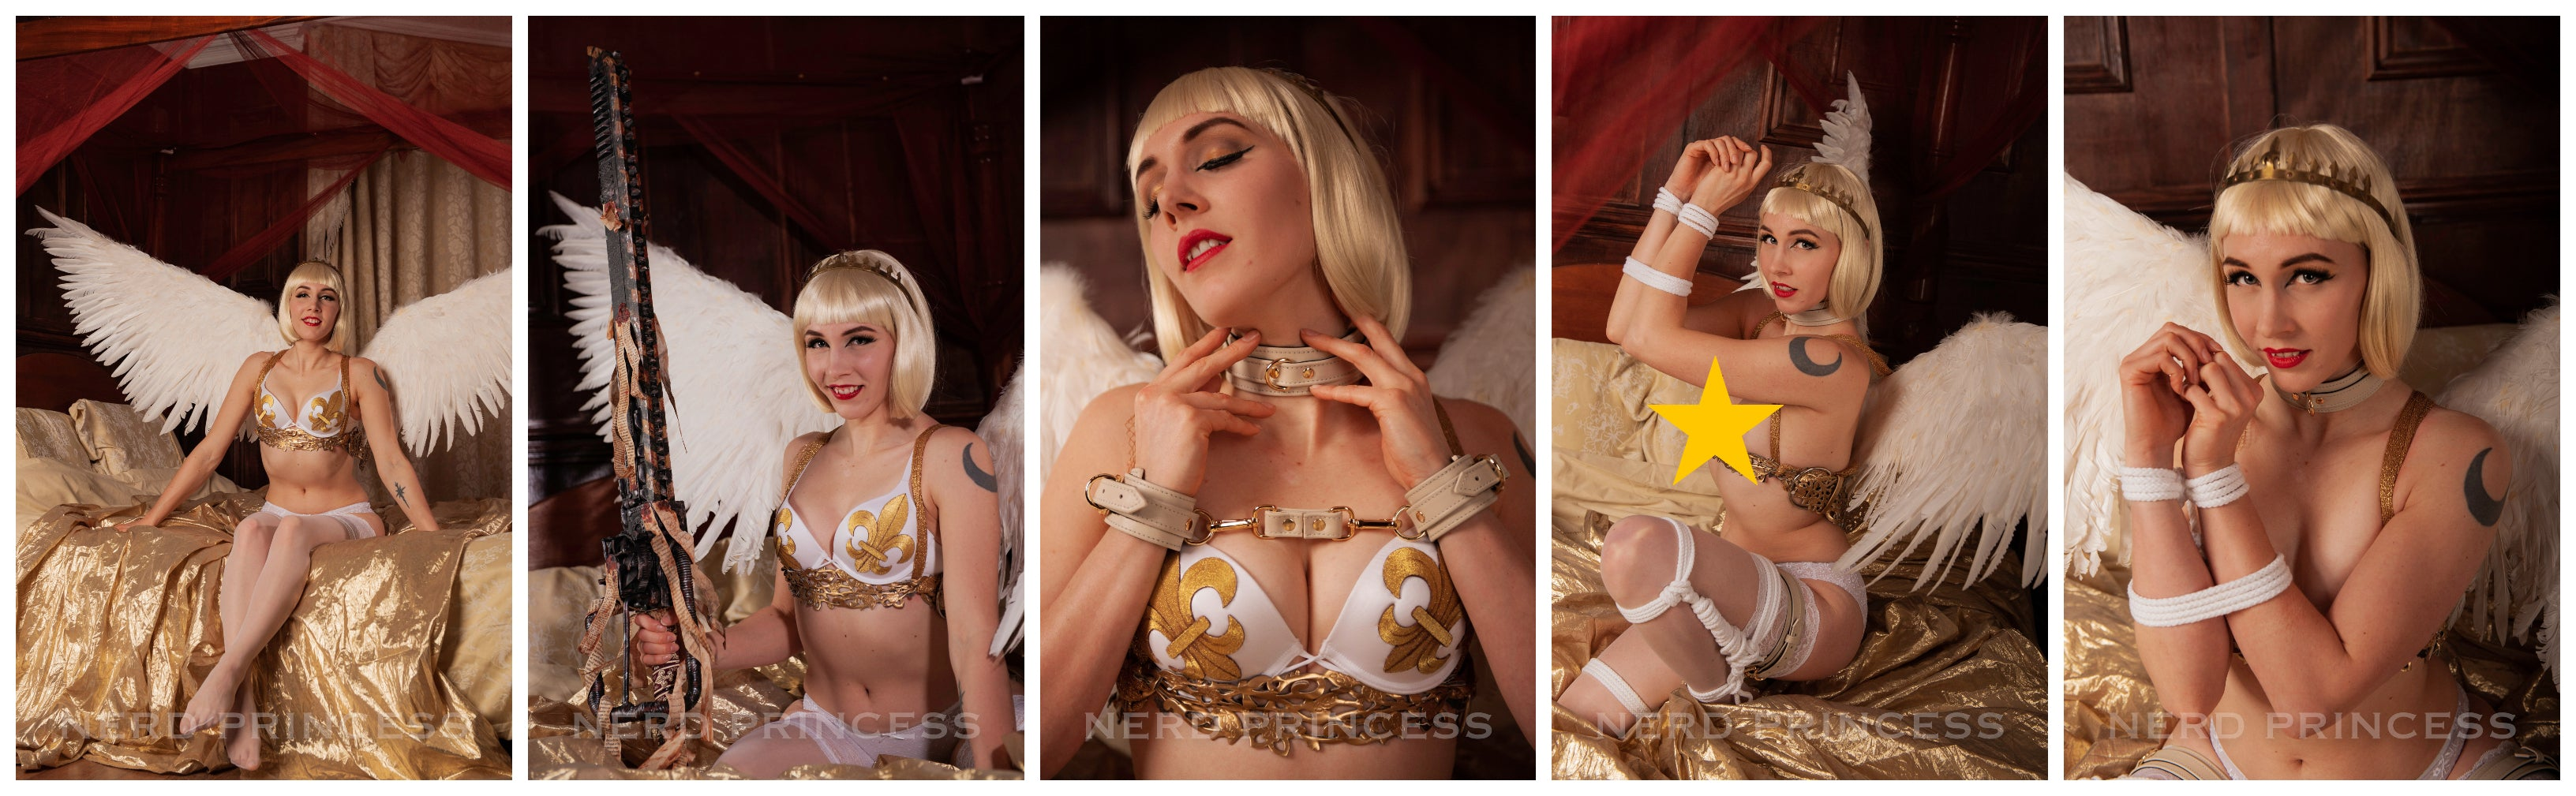 Digital Photo Set 15 - Celestine 2 - Bondage Angel!